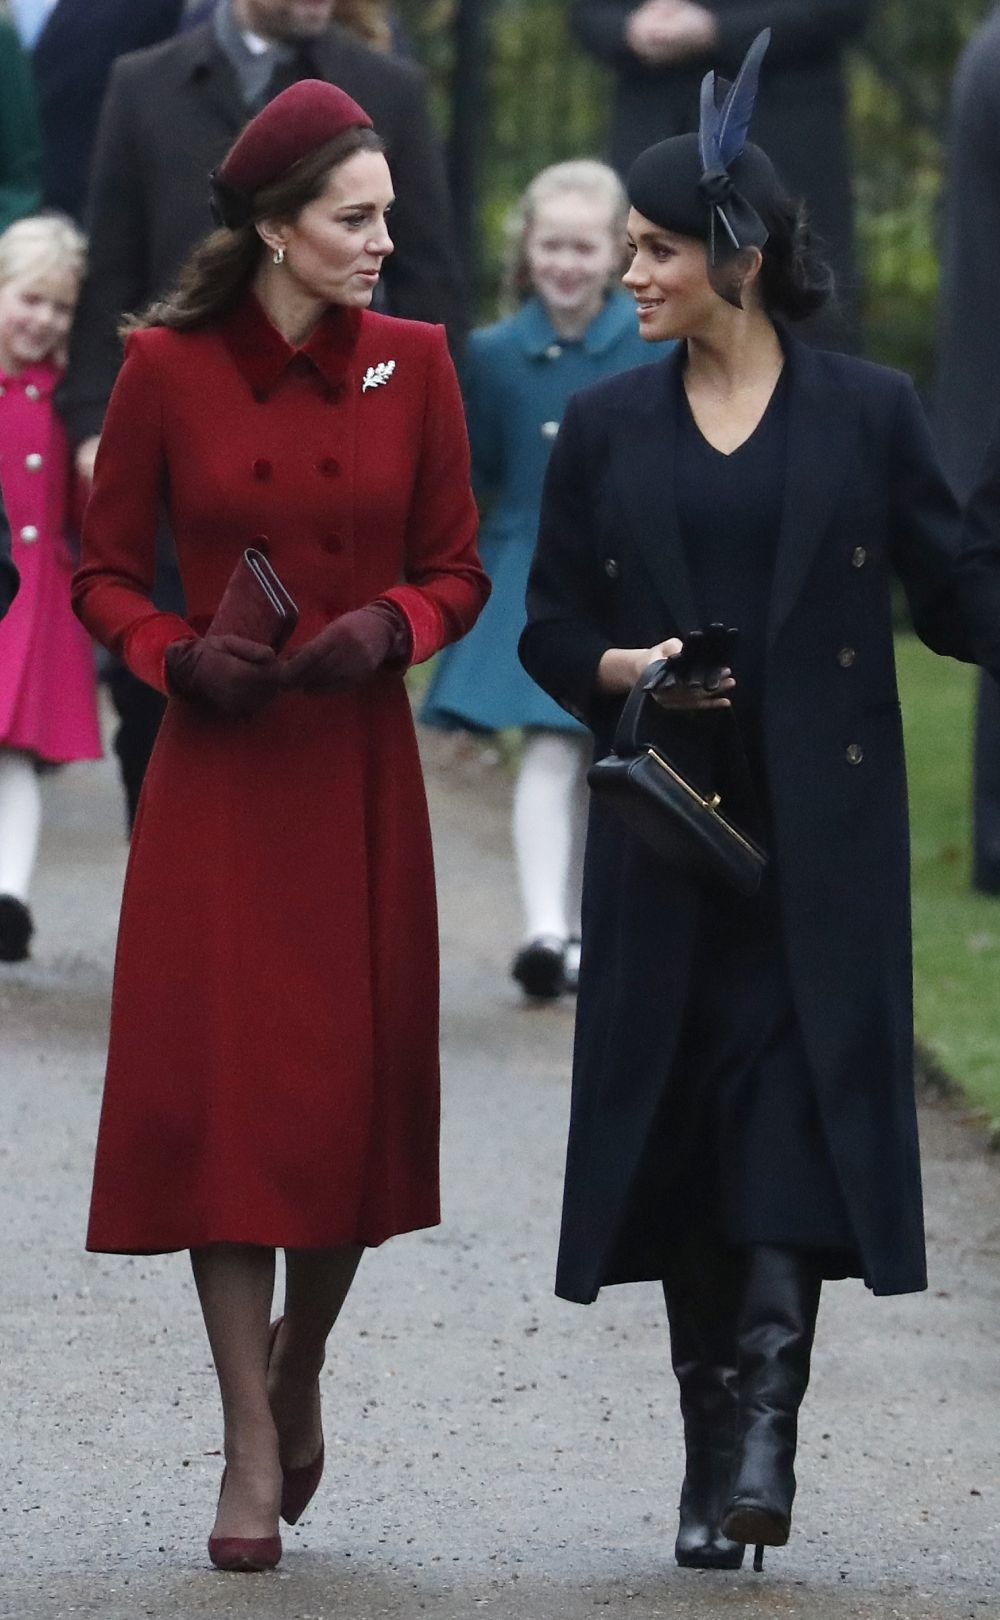 La Duquesa de Cambridge y la de Sussex en Sandringham, donde han...